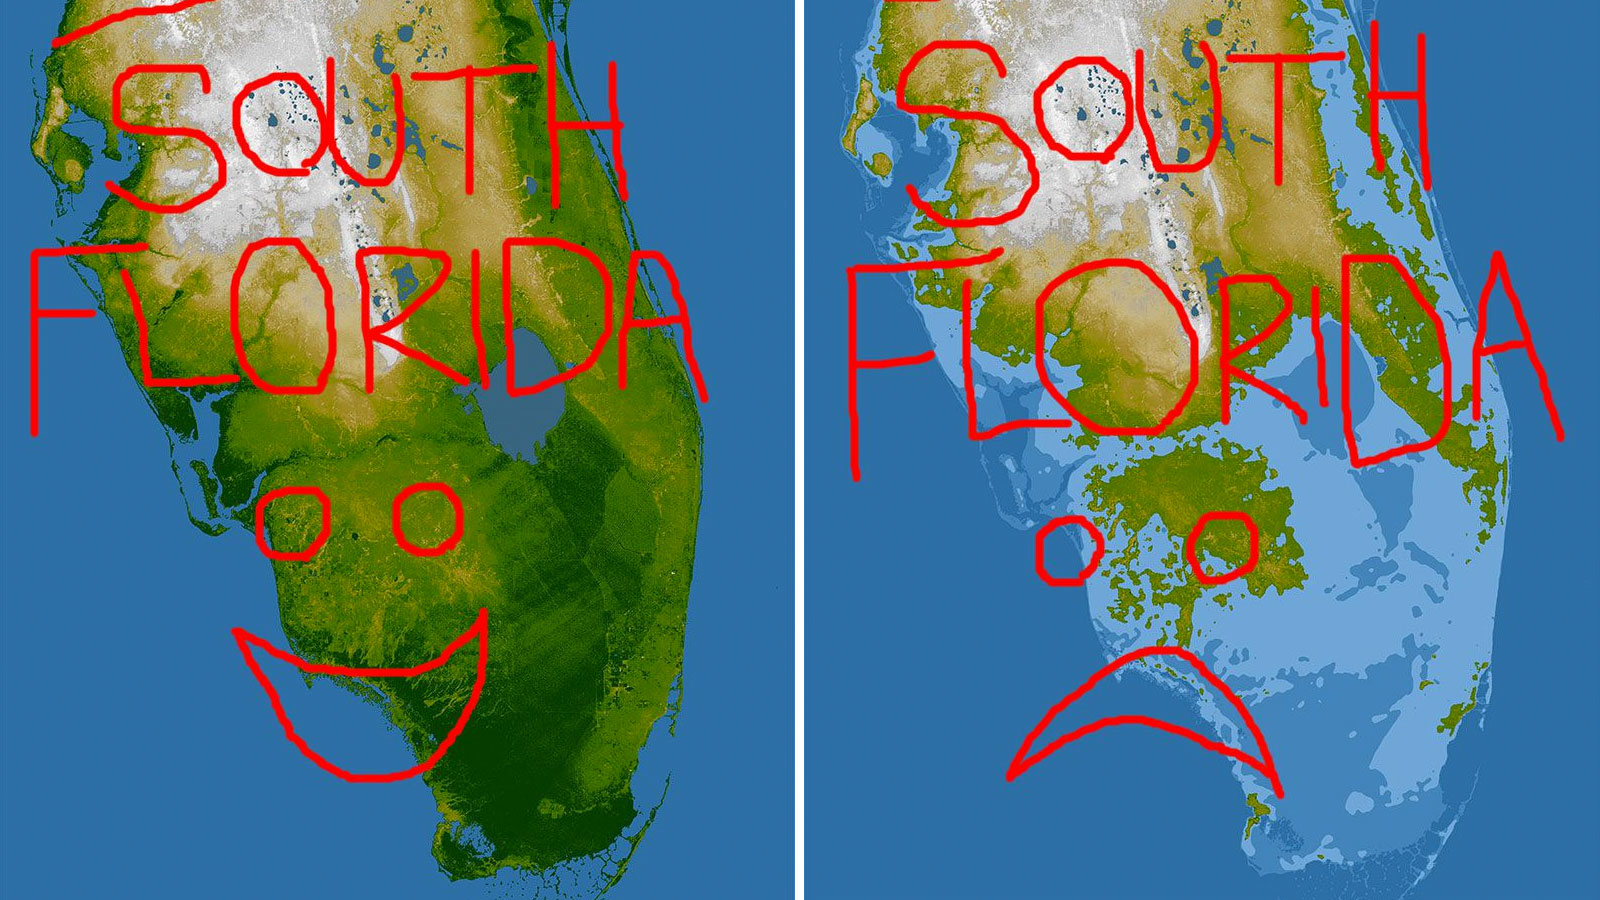 What rising sea levels will do to South Florida.